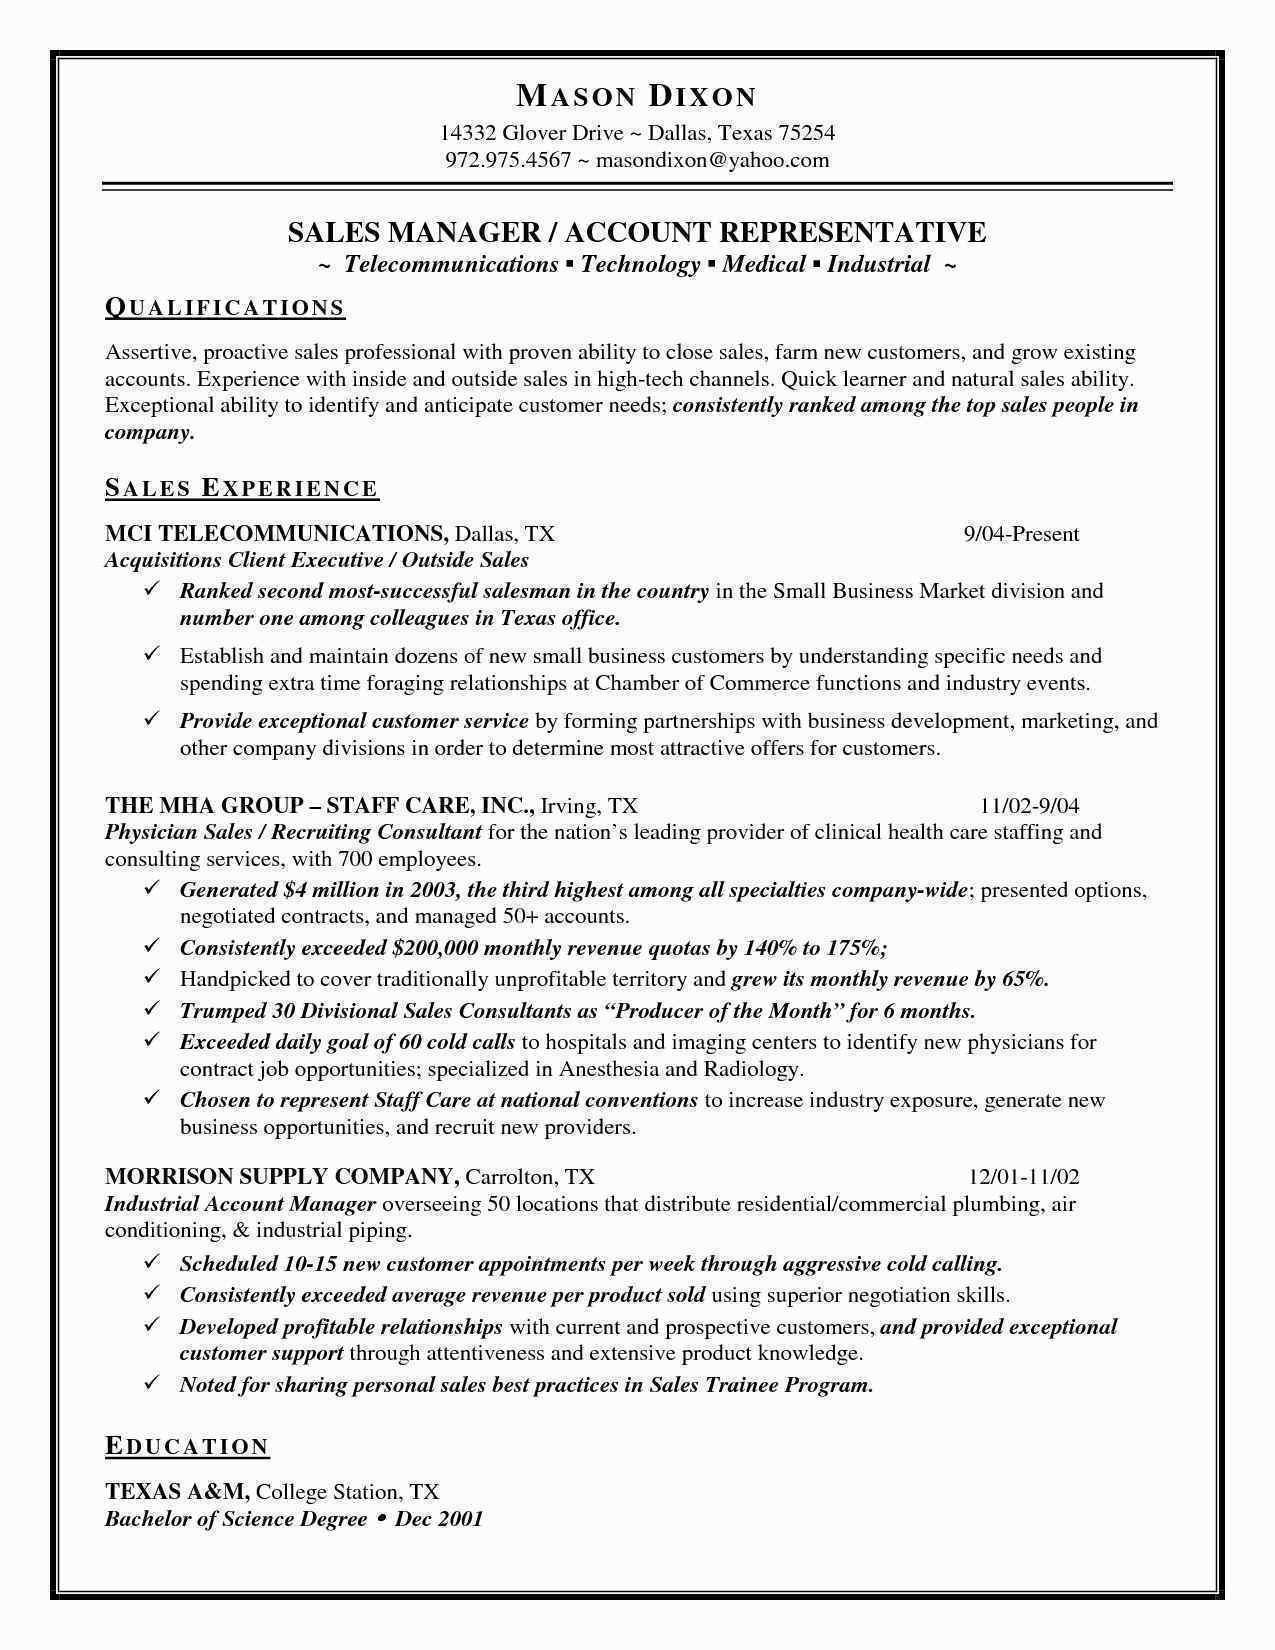 Quick Learner Resume Example - Retail Resume Sample Best Sales Resume Sample New Retail Resume